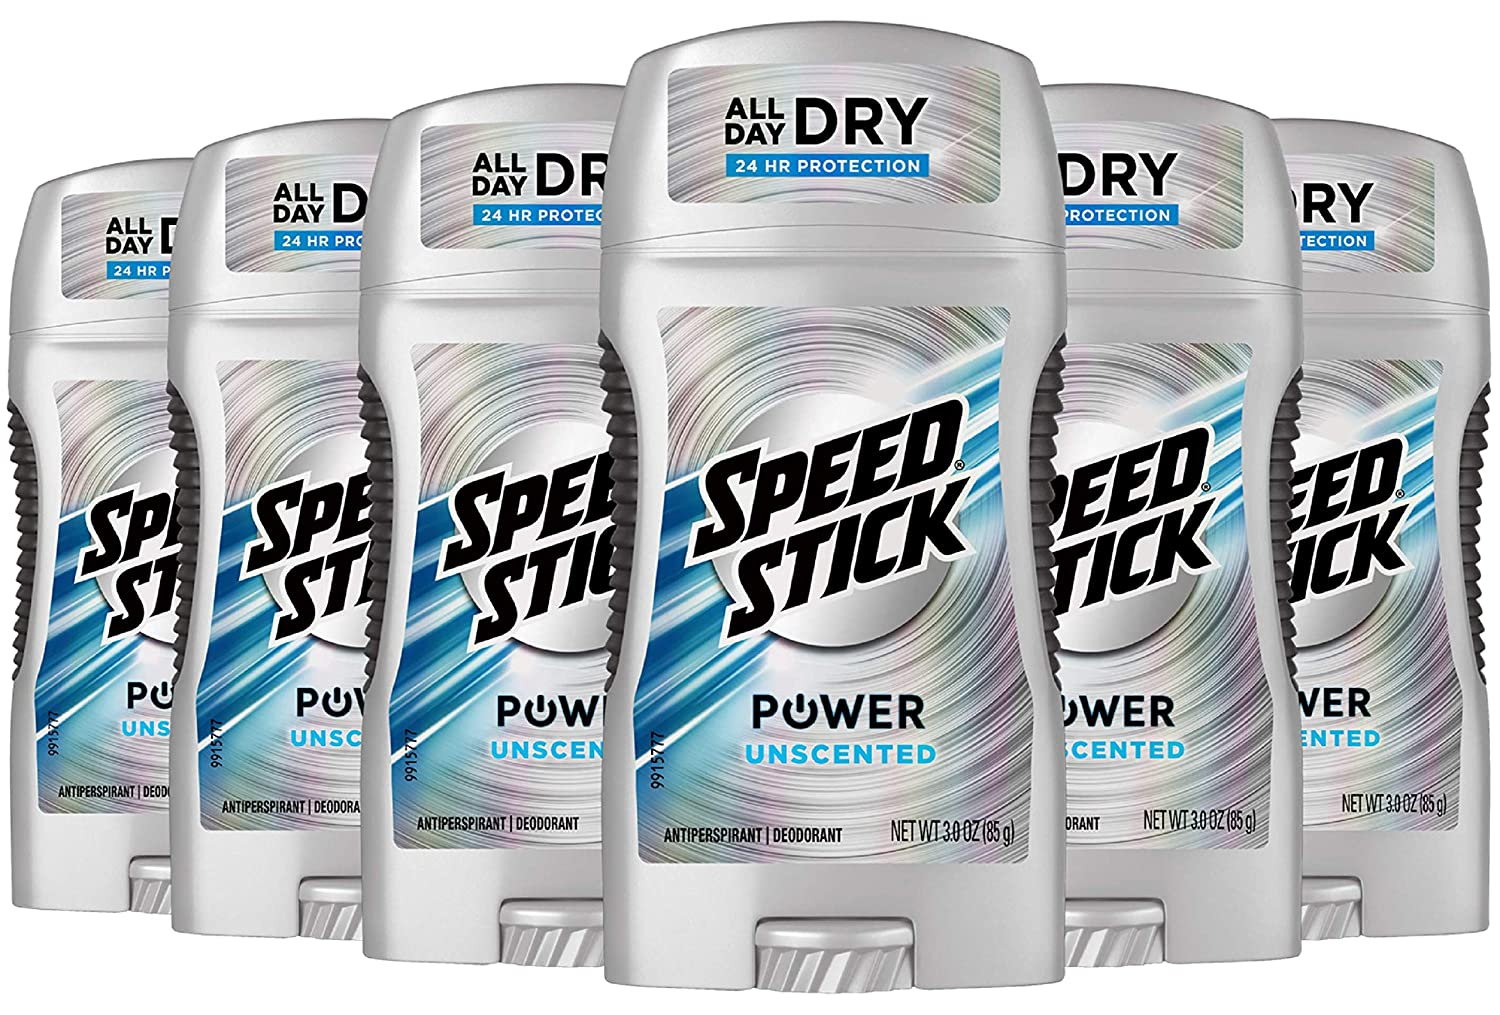 Speed Stick Power Antiperspirant Deodorant for Men, Unscented - 3 Ounce (Pack of 6)